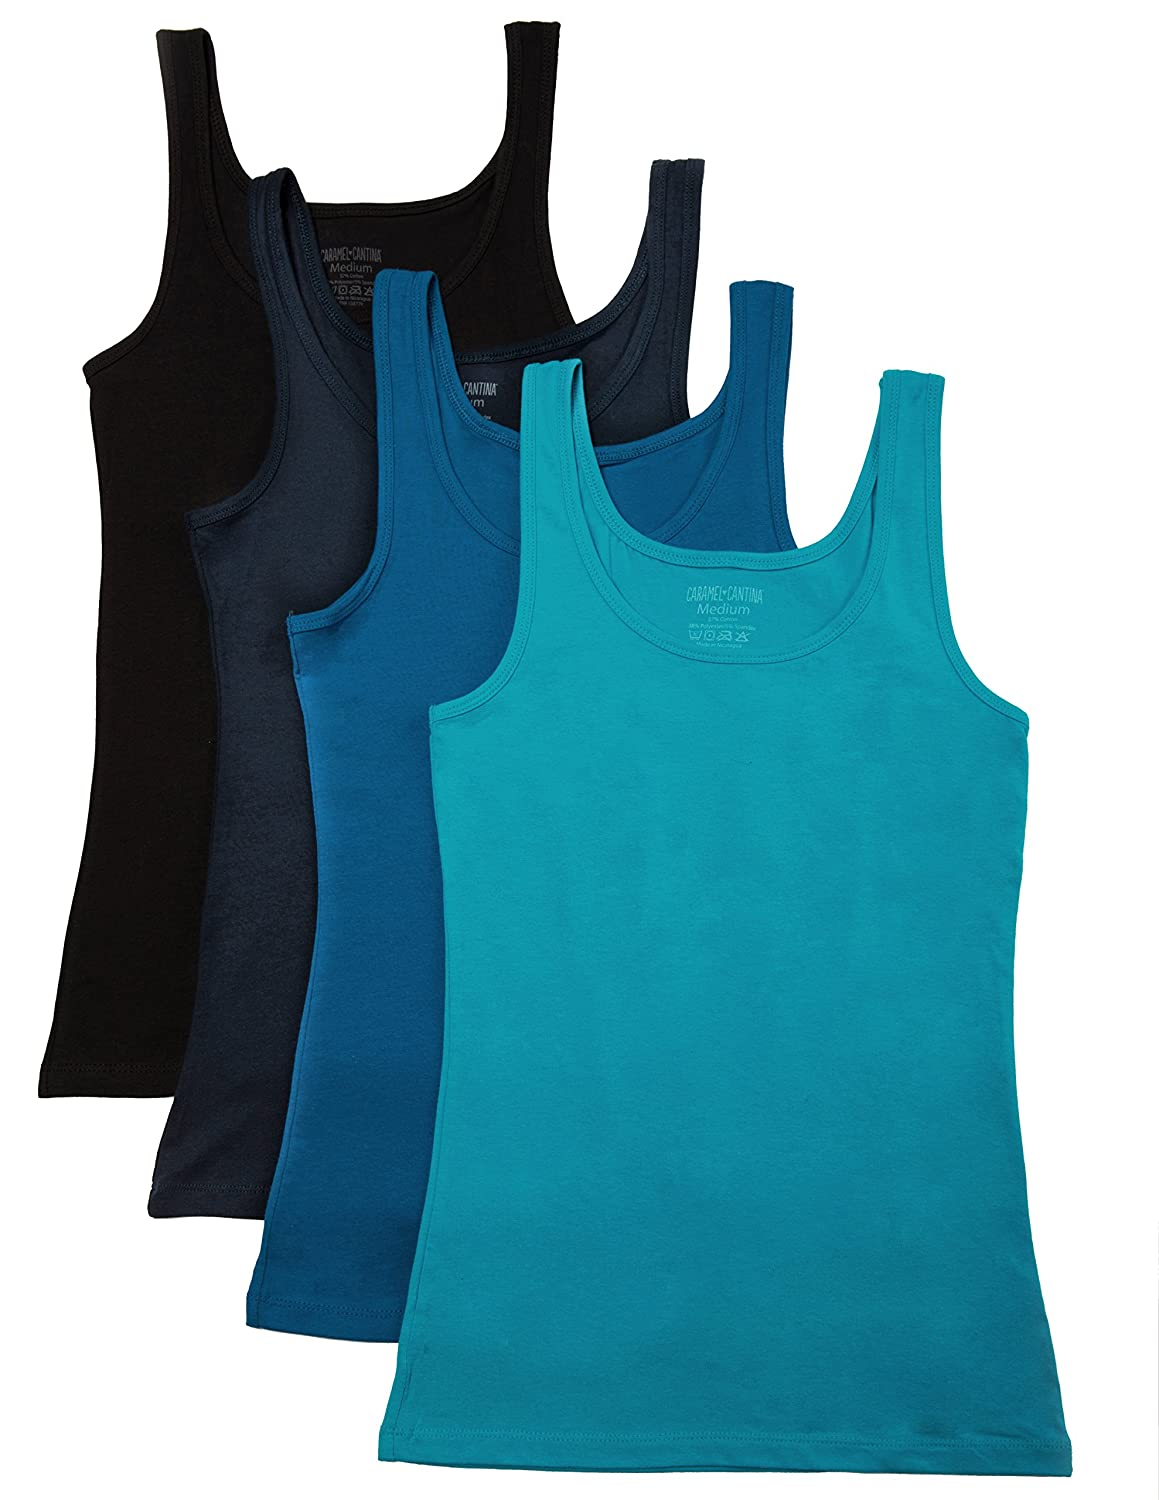 b03f22875a Tumble dry low. Do not iron. Do not bleach. 4 Pack Tank Tops for Layering  Juniors or Teens Sizes; Ladies Order 1-2 Sizes Larger Than Normal